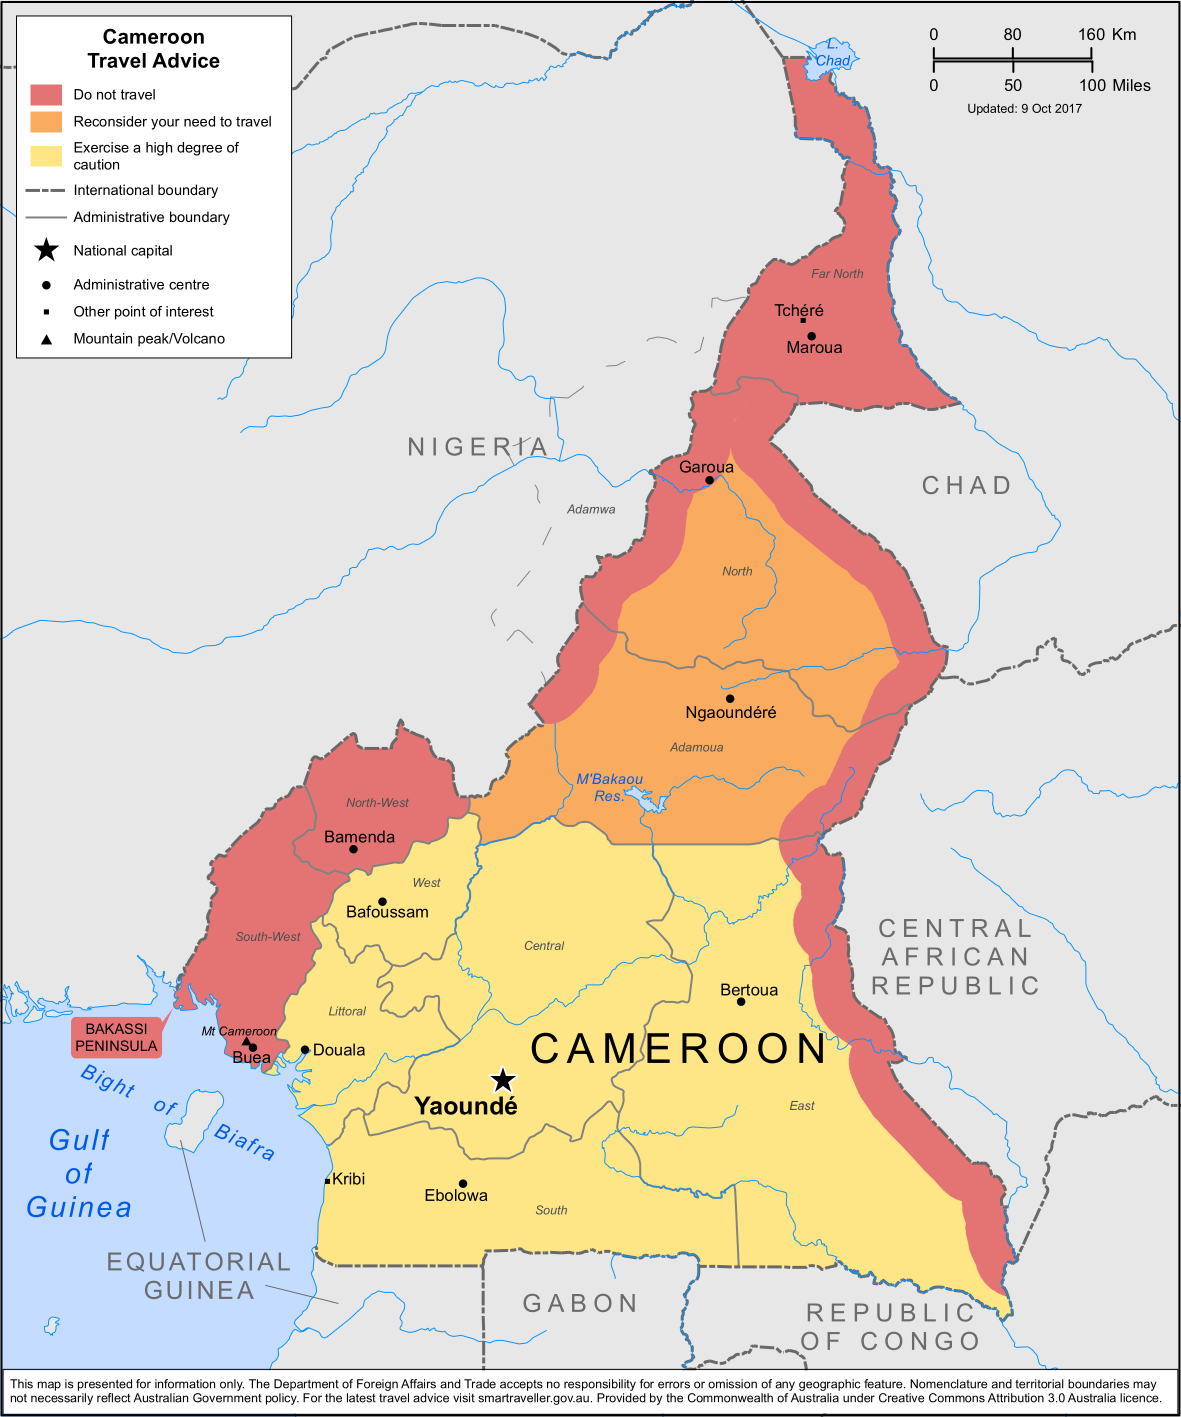 Cameroon-Travel-Insurance | AARDY.com